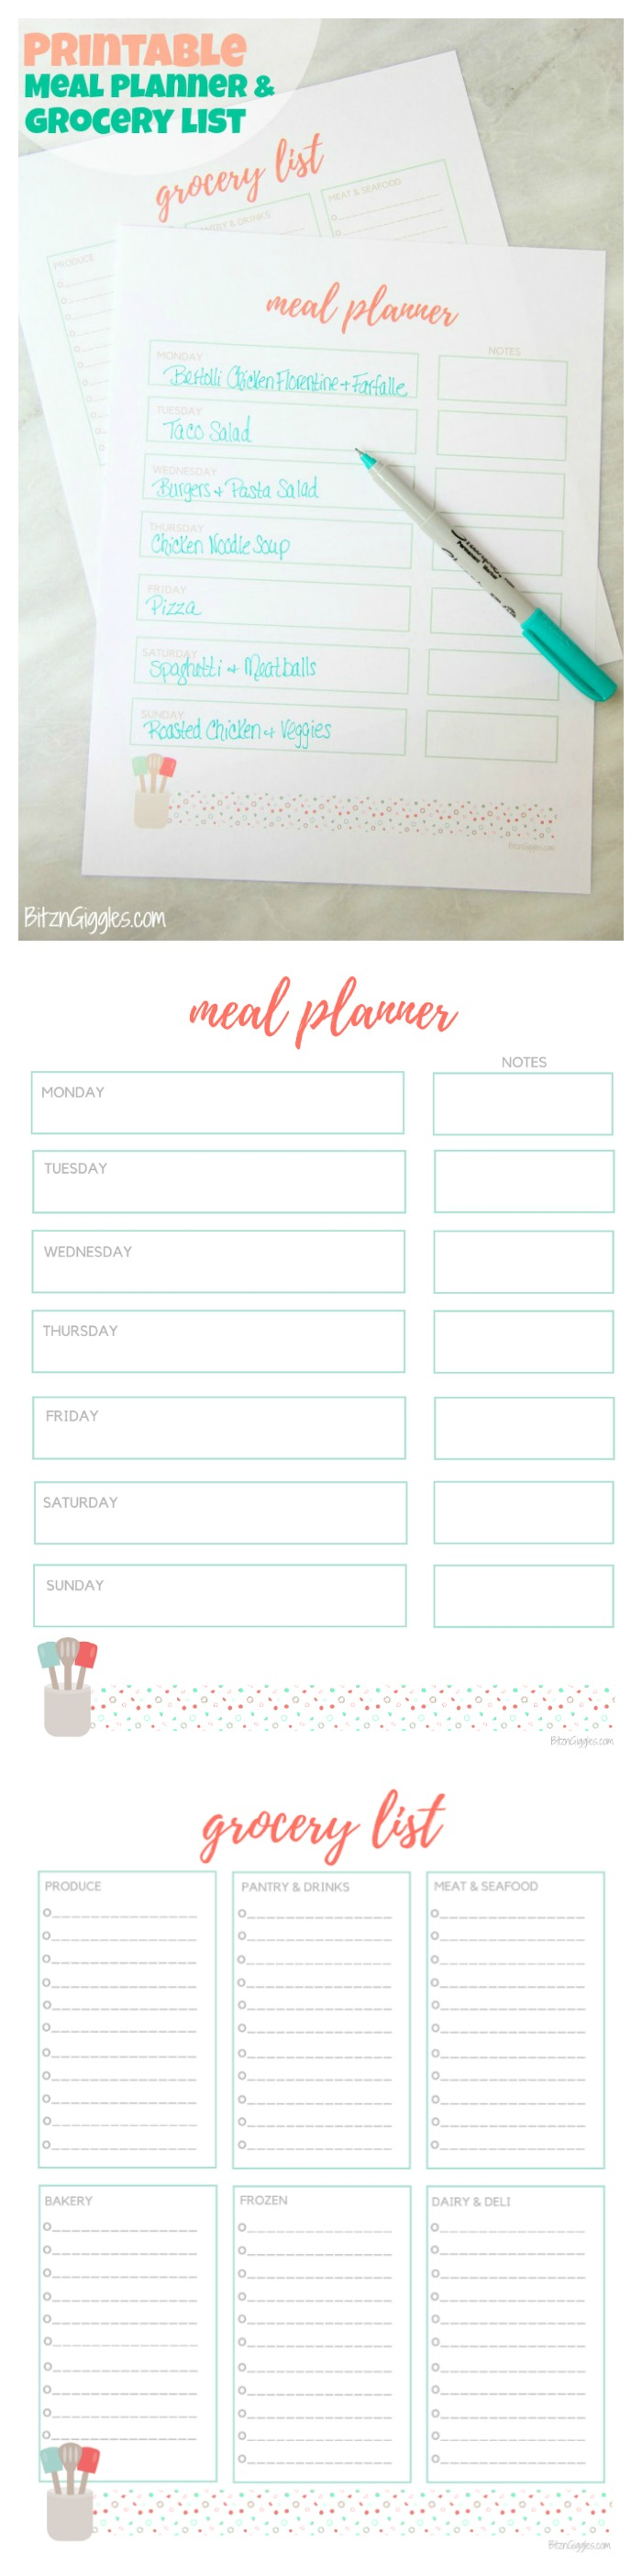 printable meal planner grocery list free meal planner and grocery list printables to help